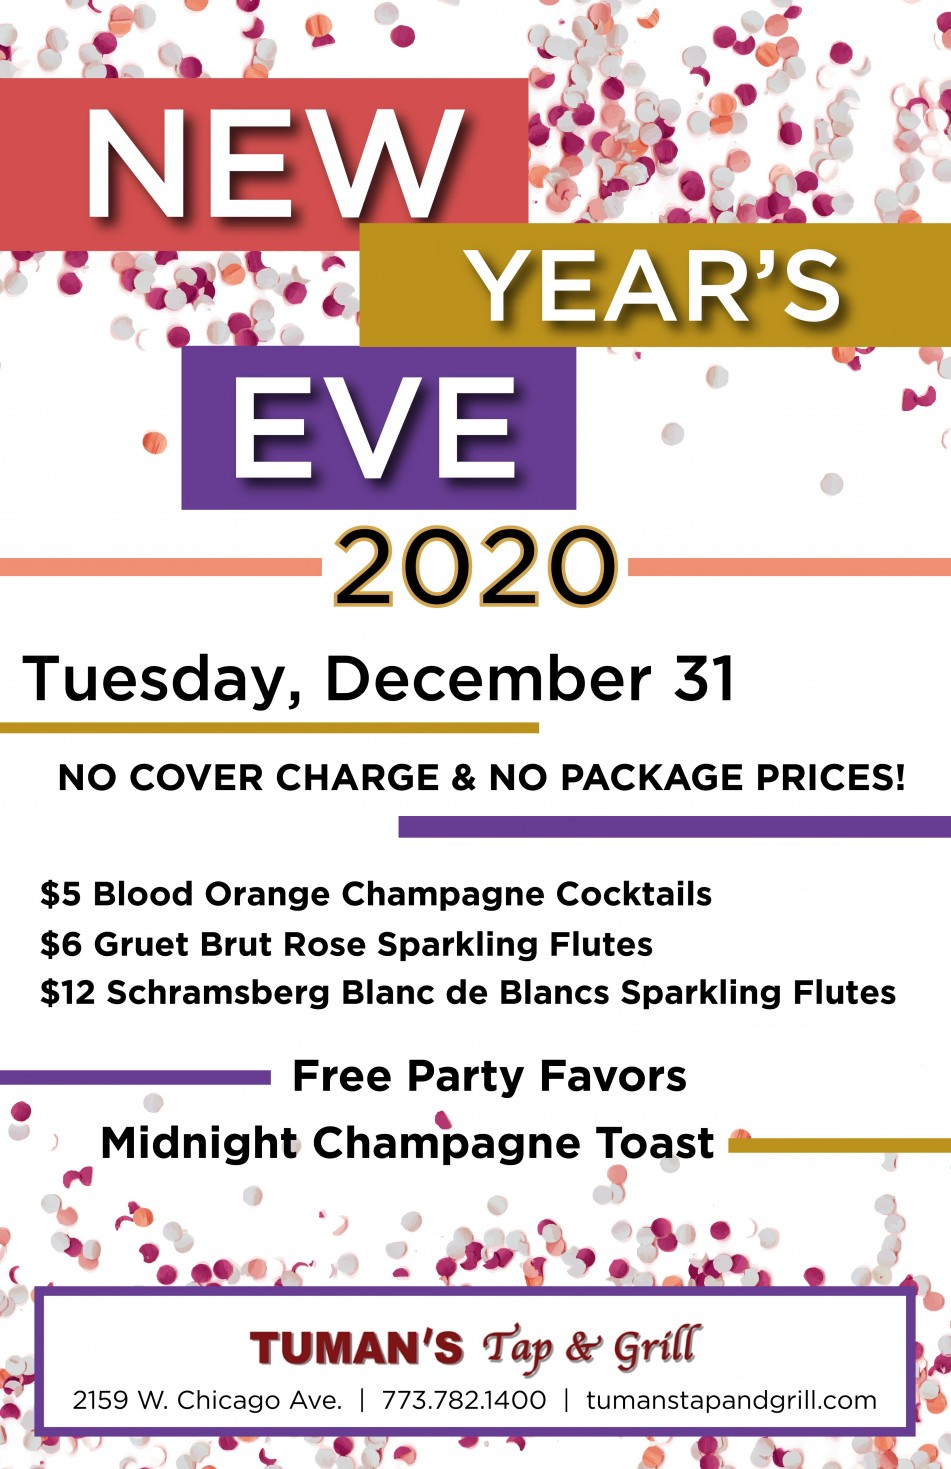 No Hassle New Year's Eve at Tuman's Tap & Grill